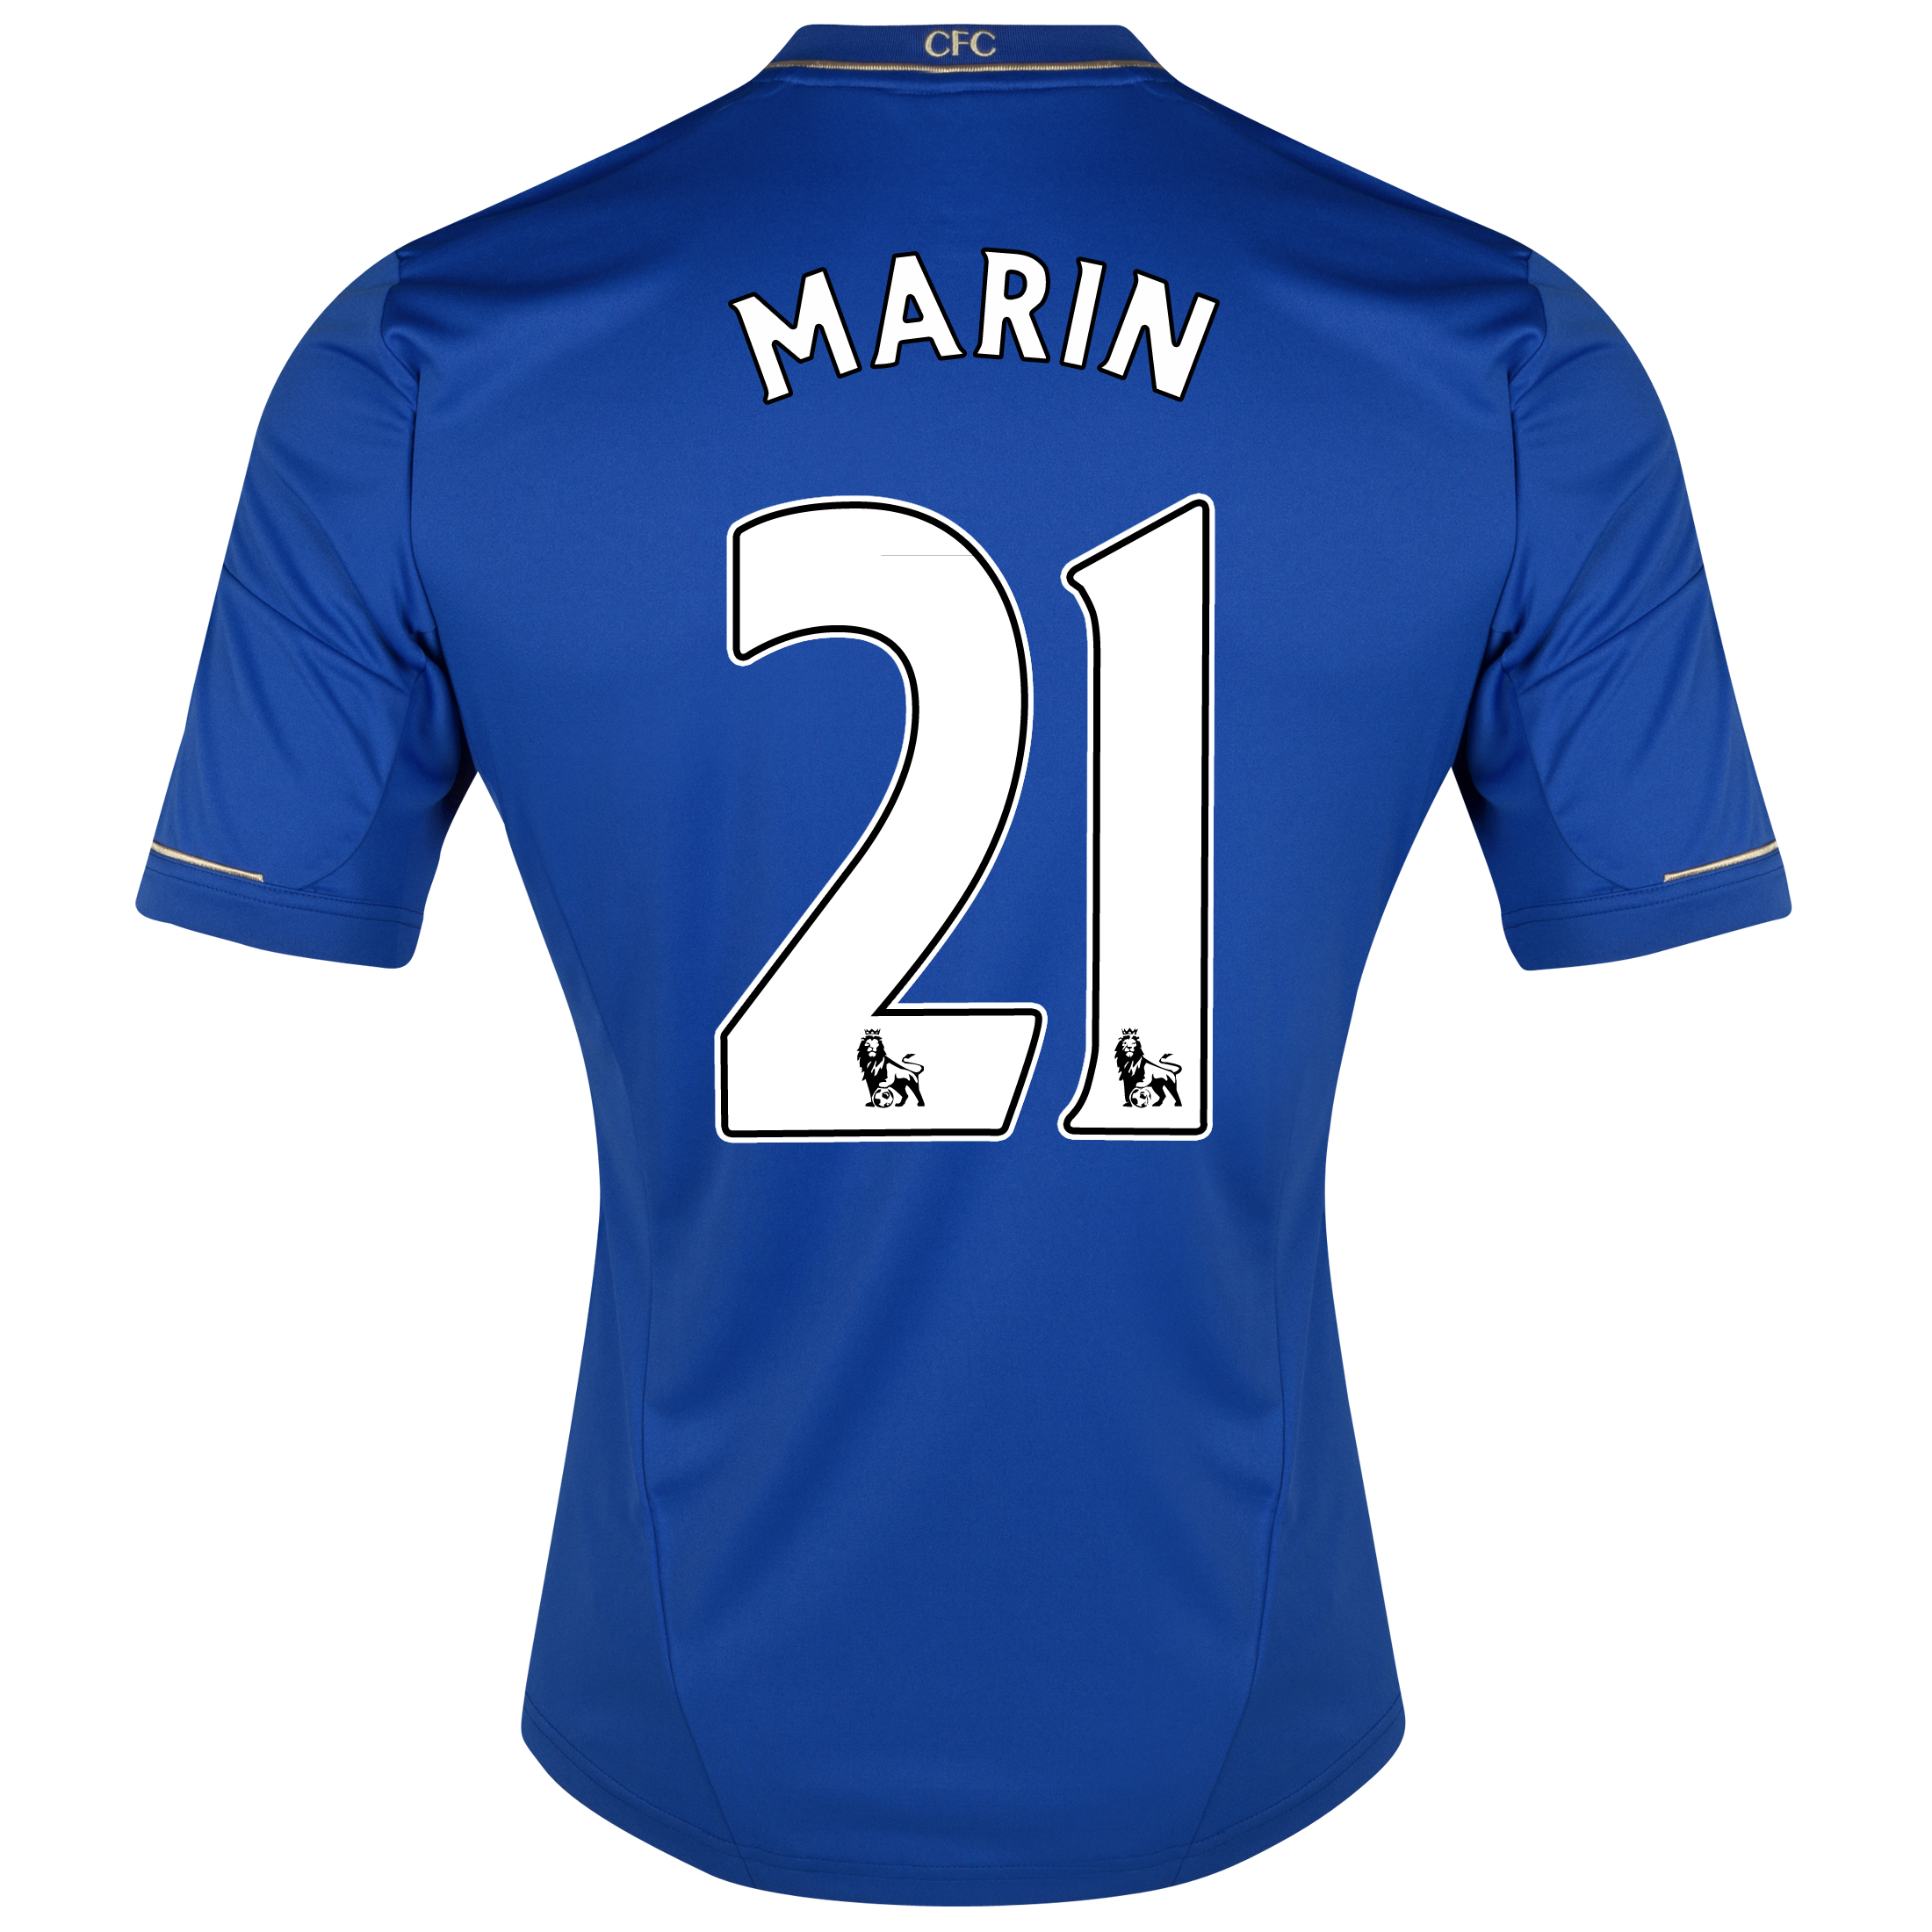 Chelsea Home Shirt 2012/13 with Marin 21 printing